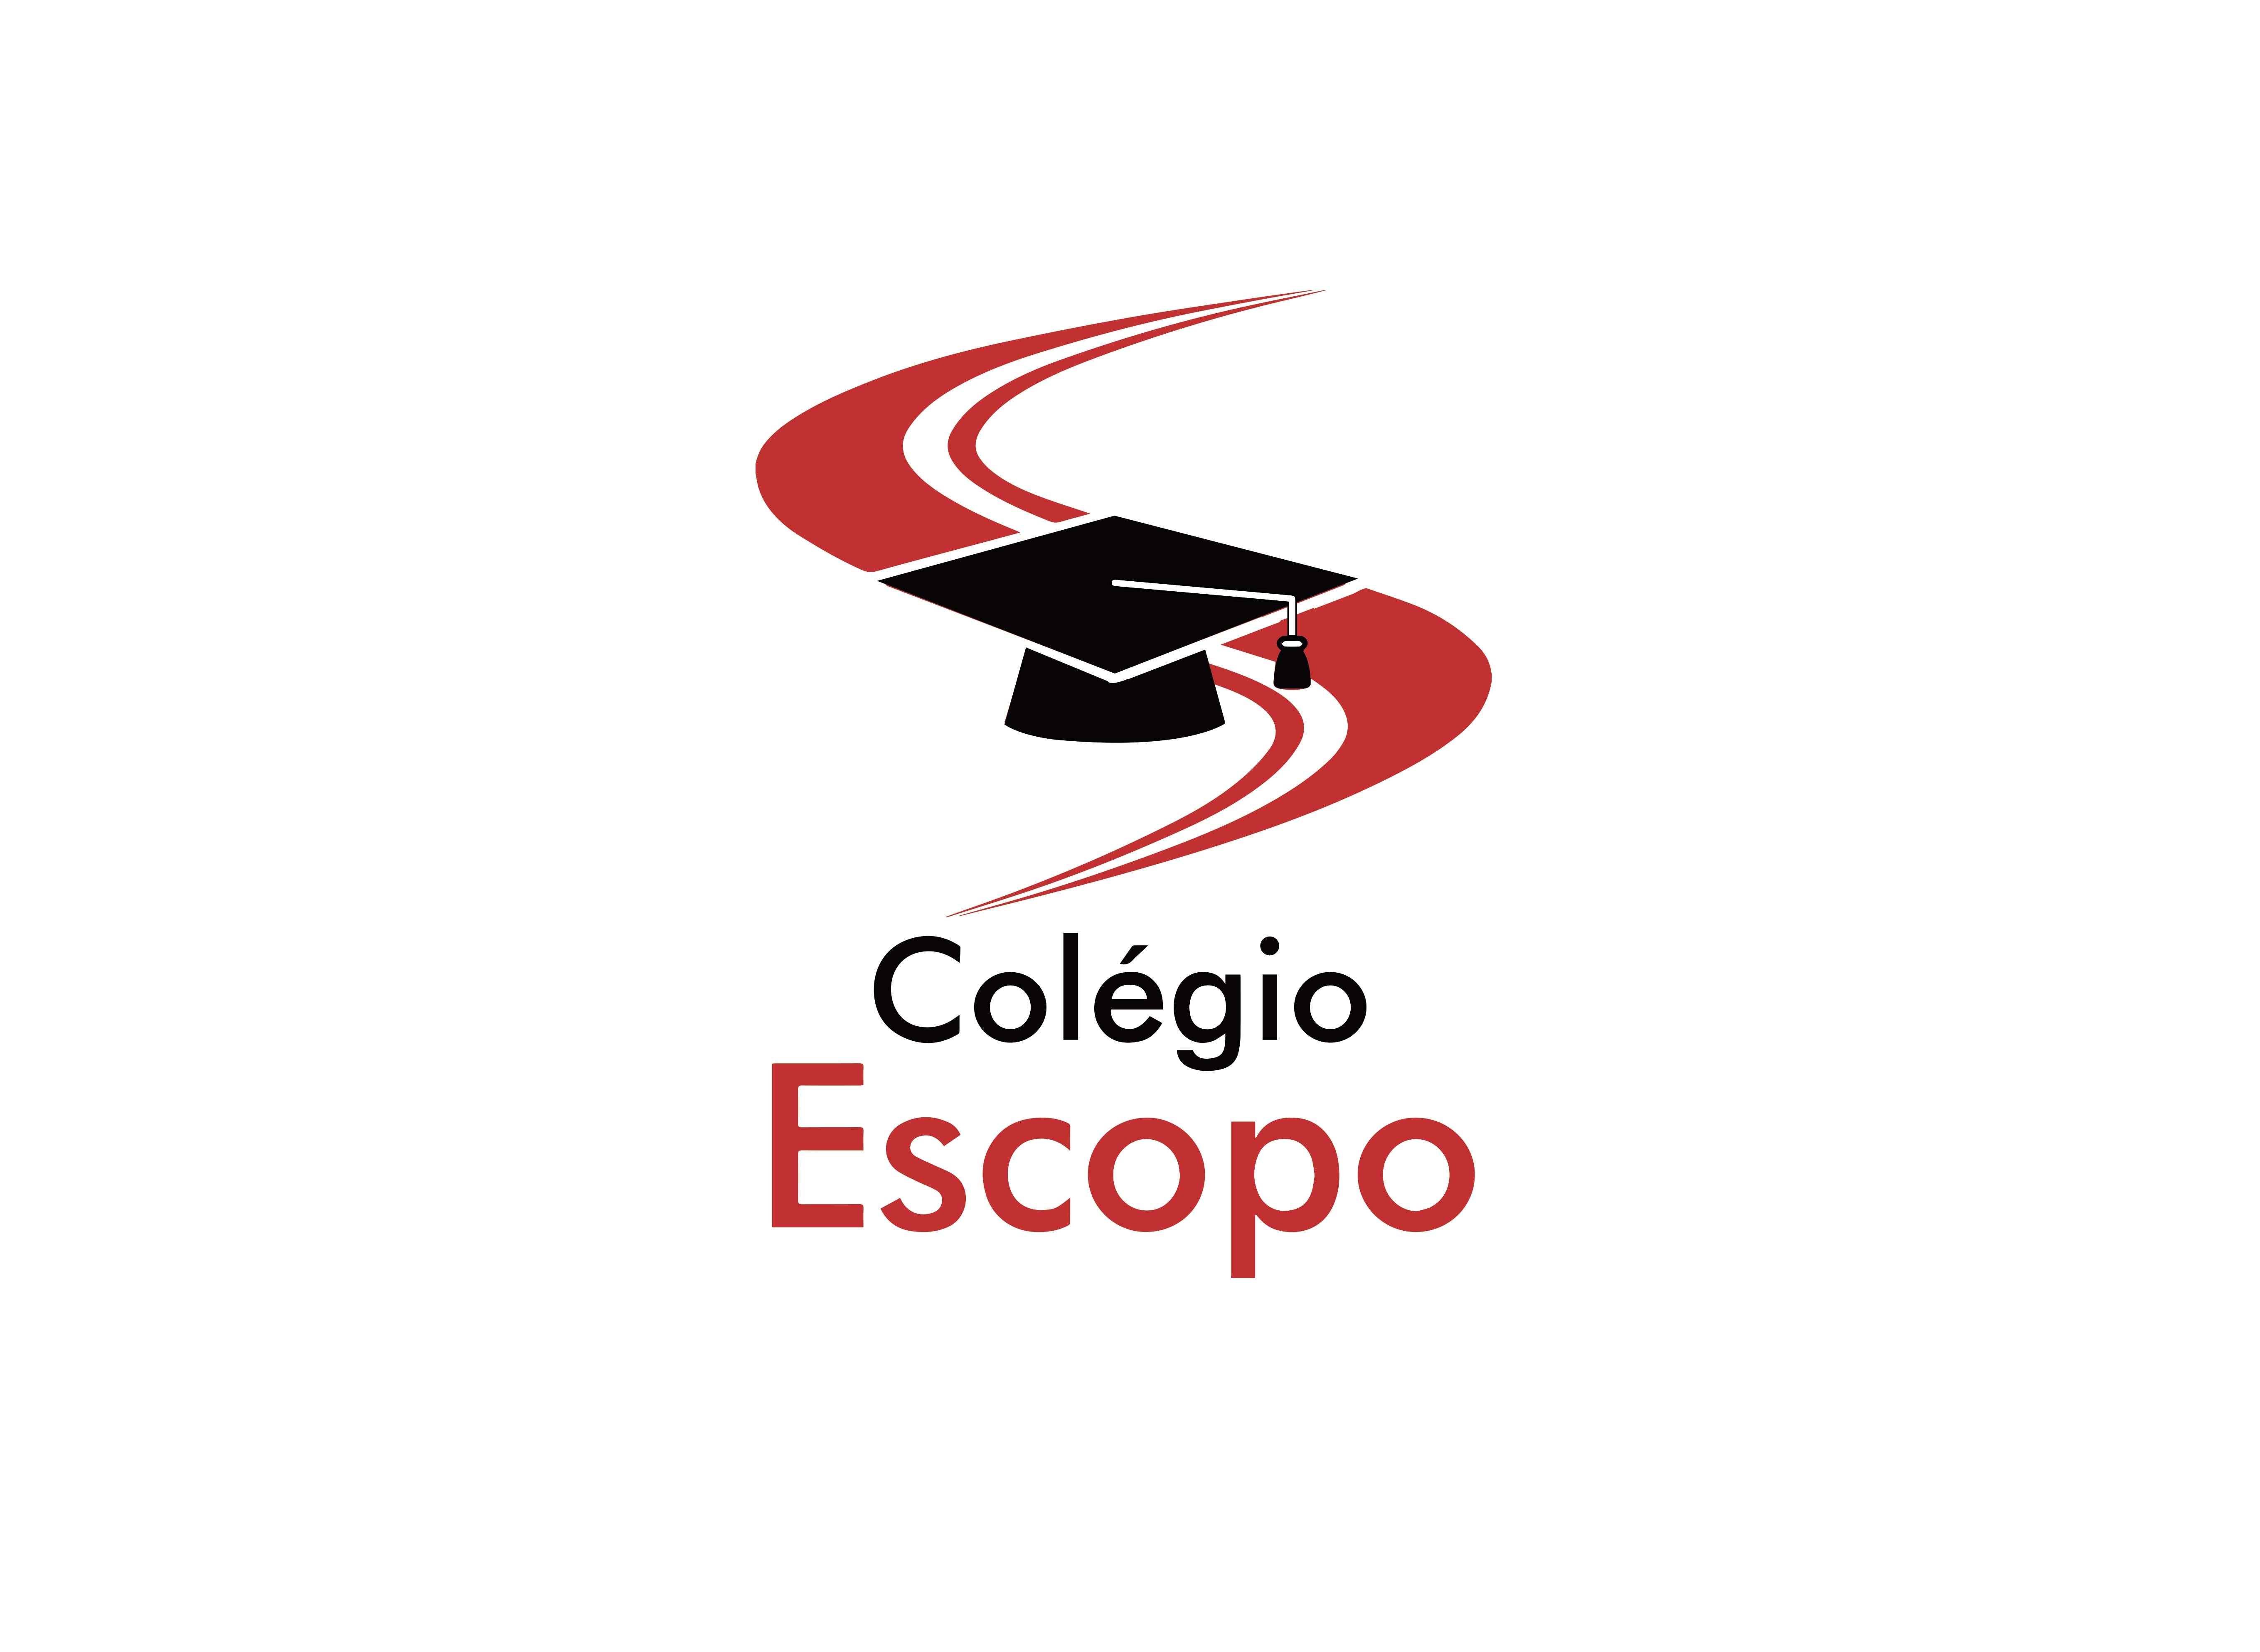 colegio-escopo-drc-marketingdigital